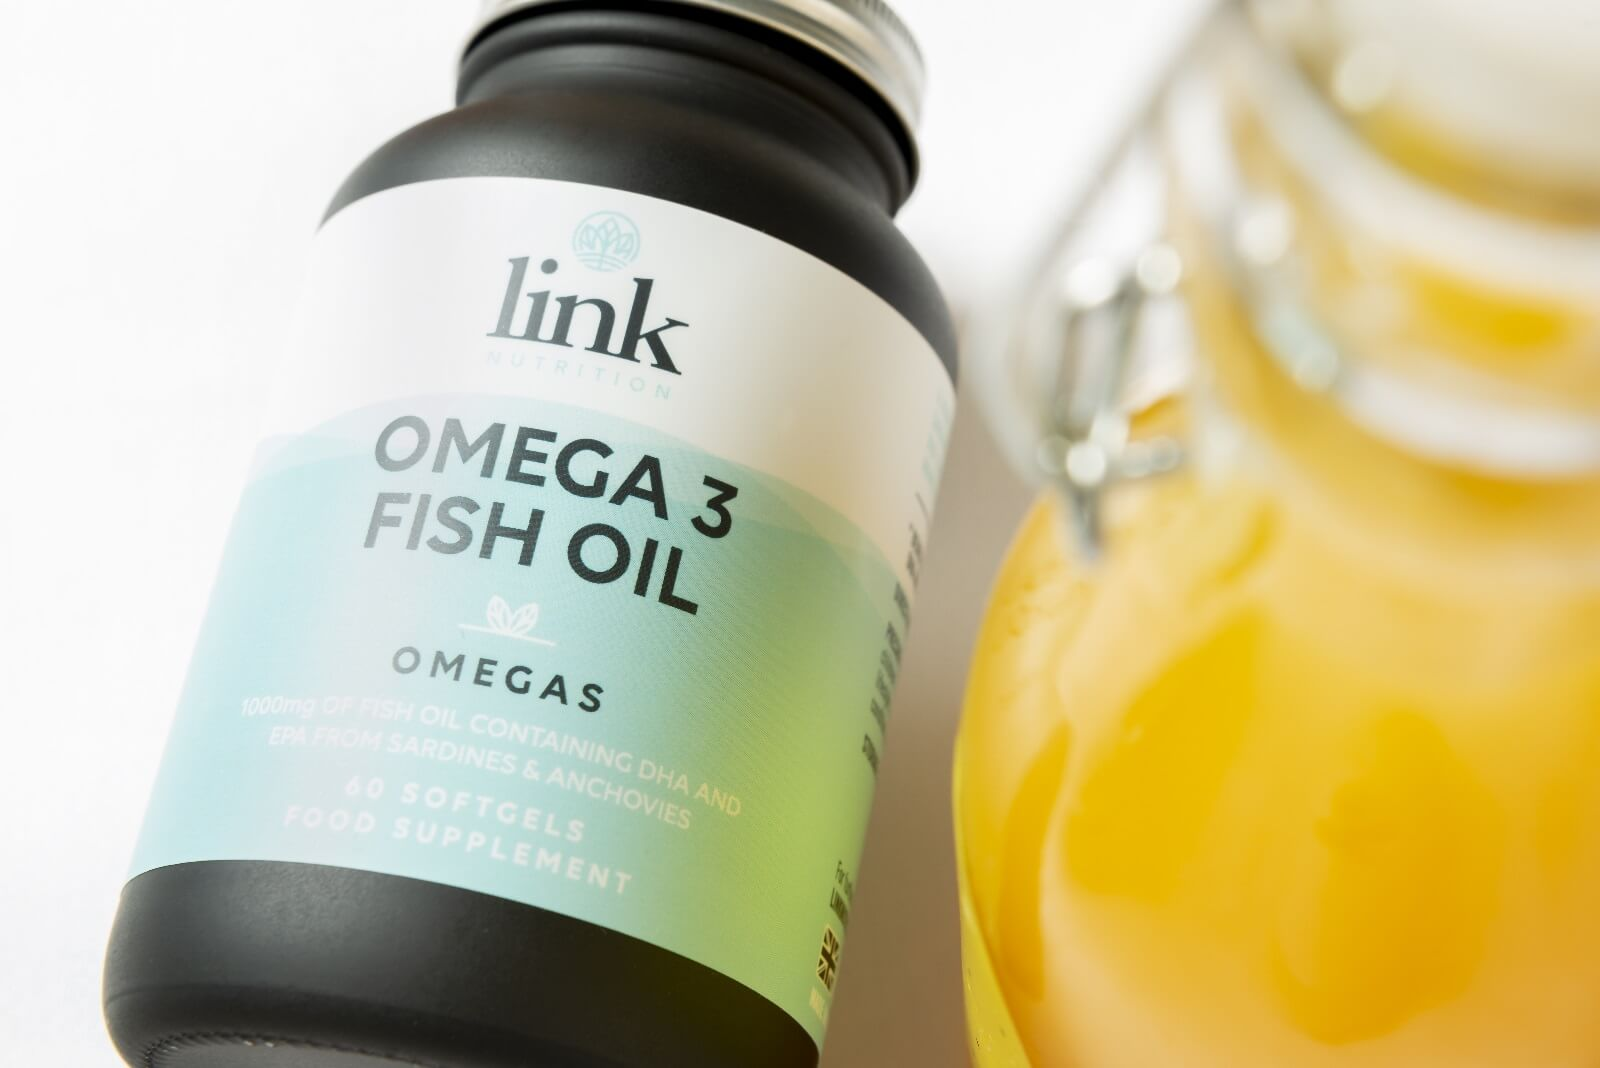 A typical Western diet contains lots of Omega 6, with worryingly little Omega 3. A fish oil supplement can help remedy this.